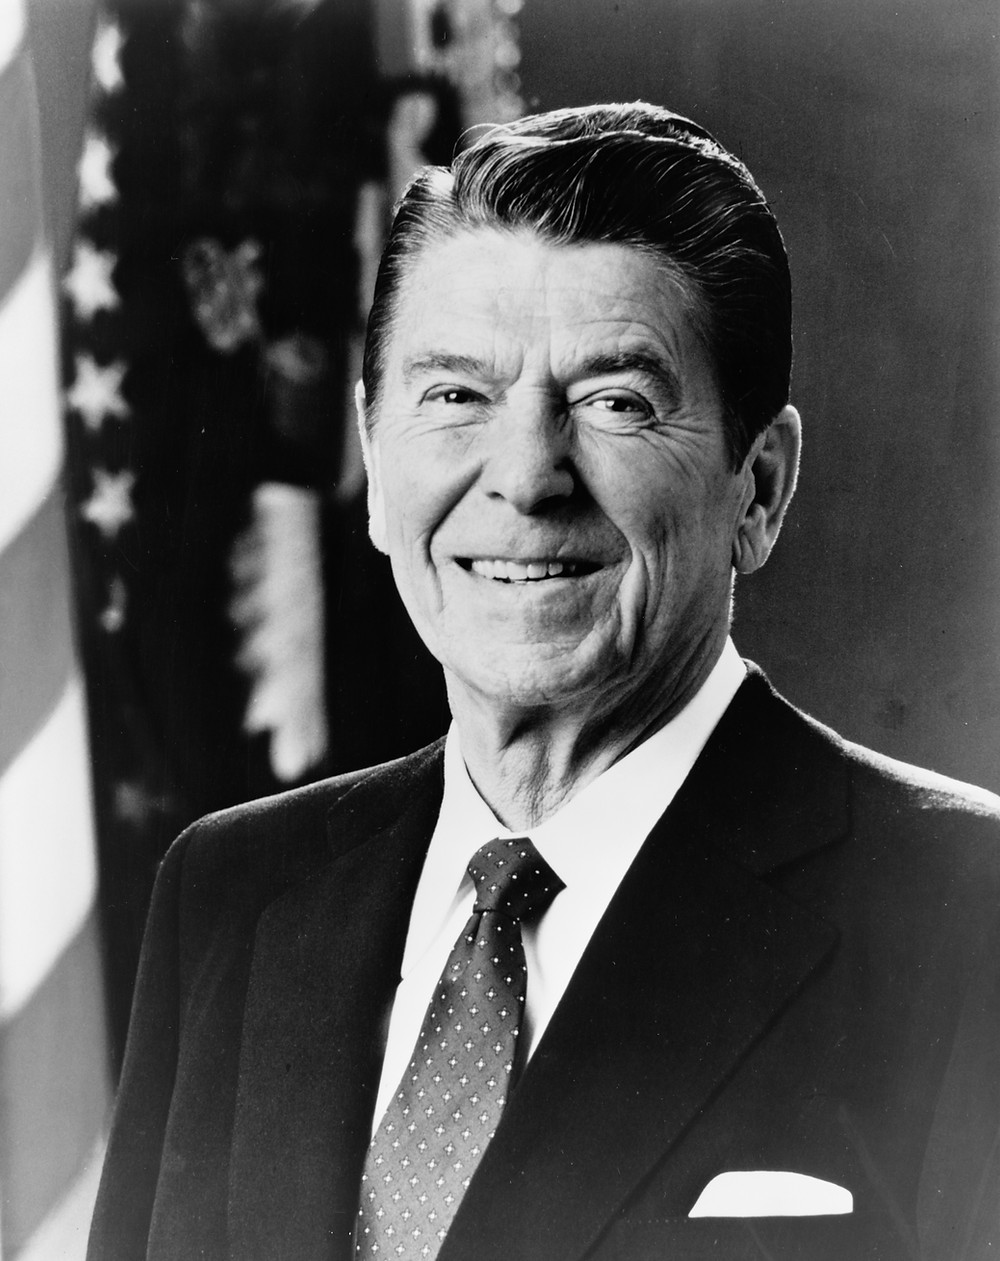 President Reagan. The first climate skeptical president